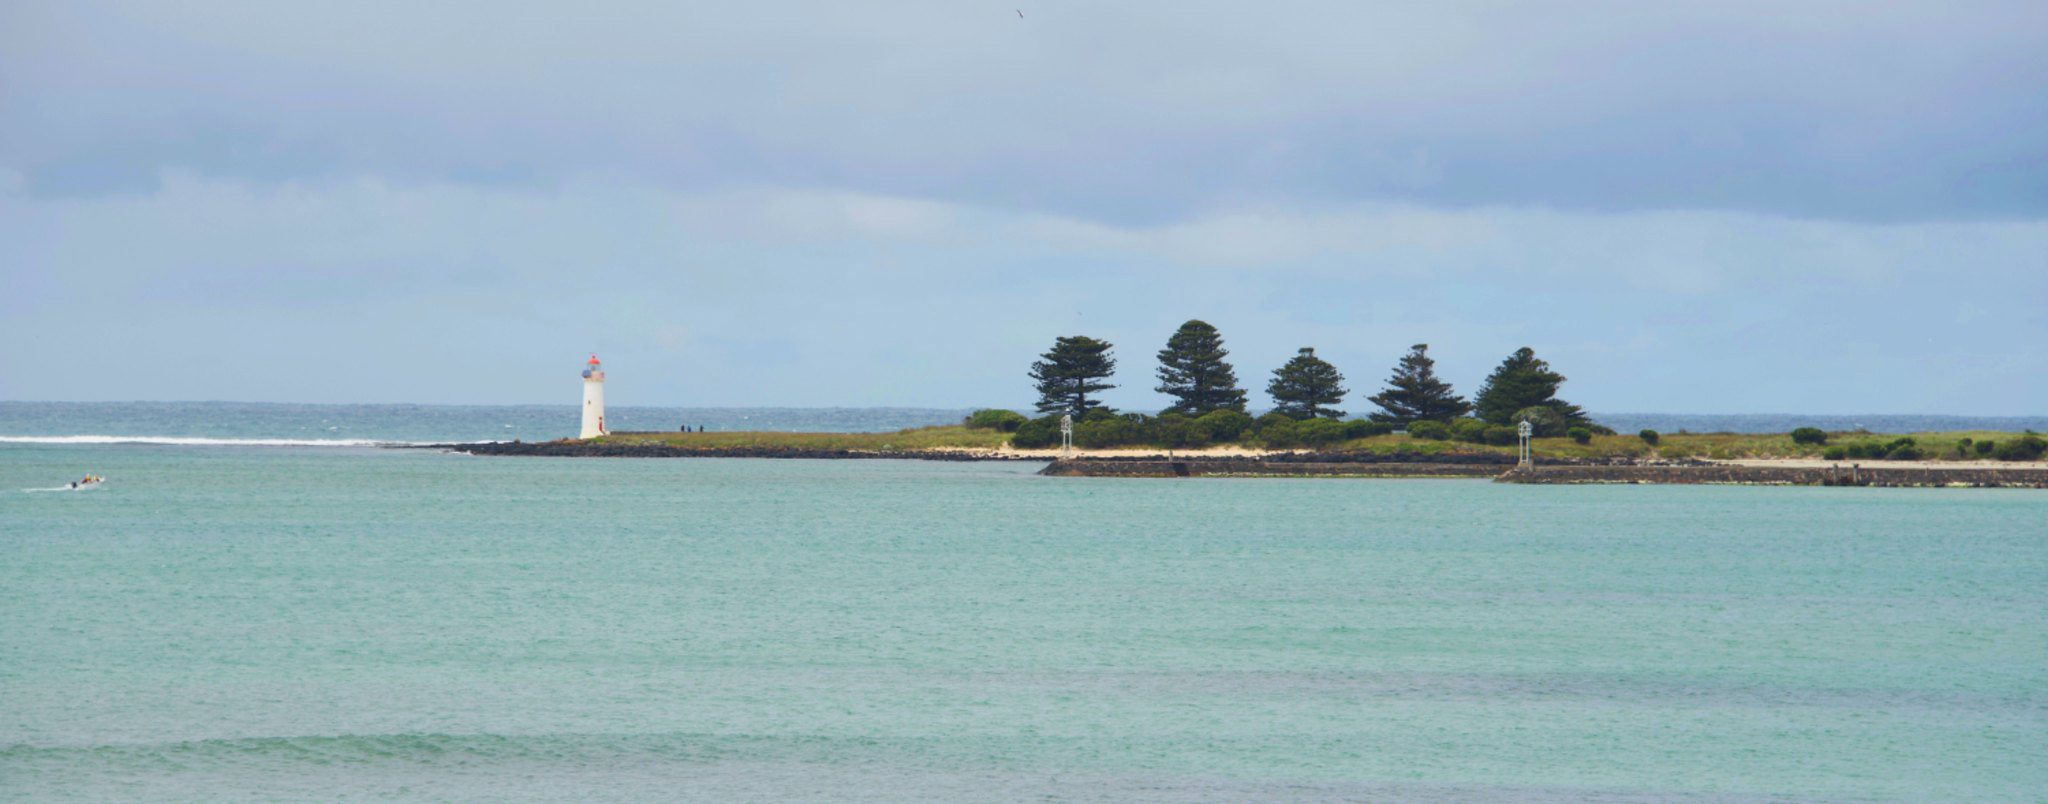 Looking towards Port Fairy lighthouse. Photo: Robert Deutscher